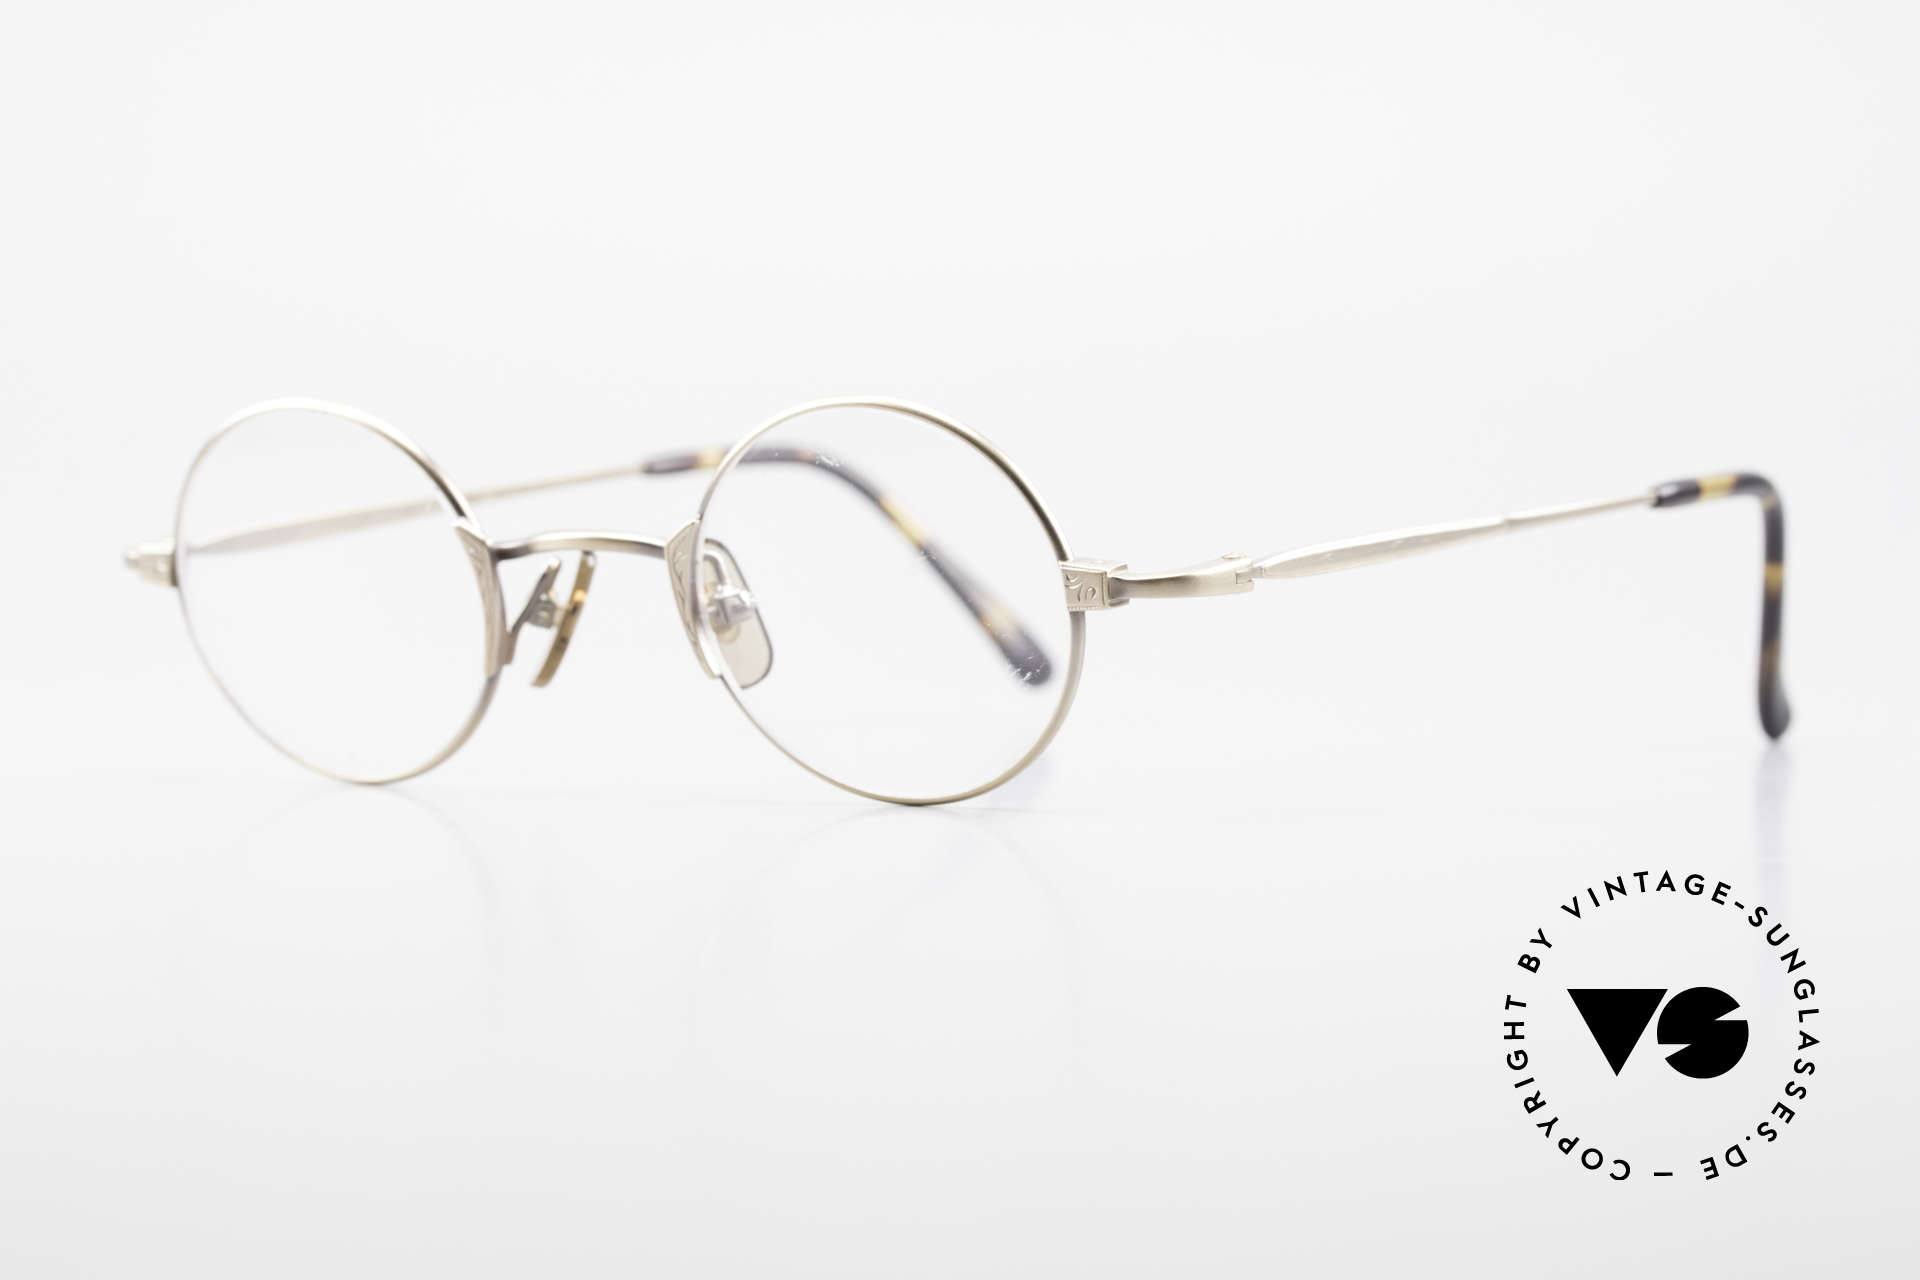 Freudenhaus Tori Small Round Designer Frame, costly frame, top notch craftsmanship (from Japan), Made for Men and Women